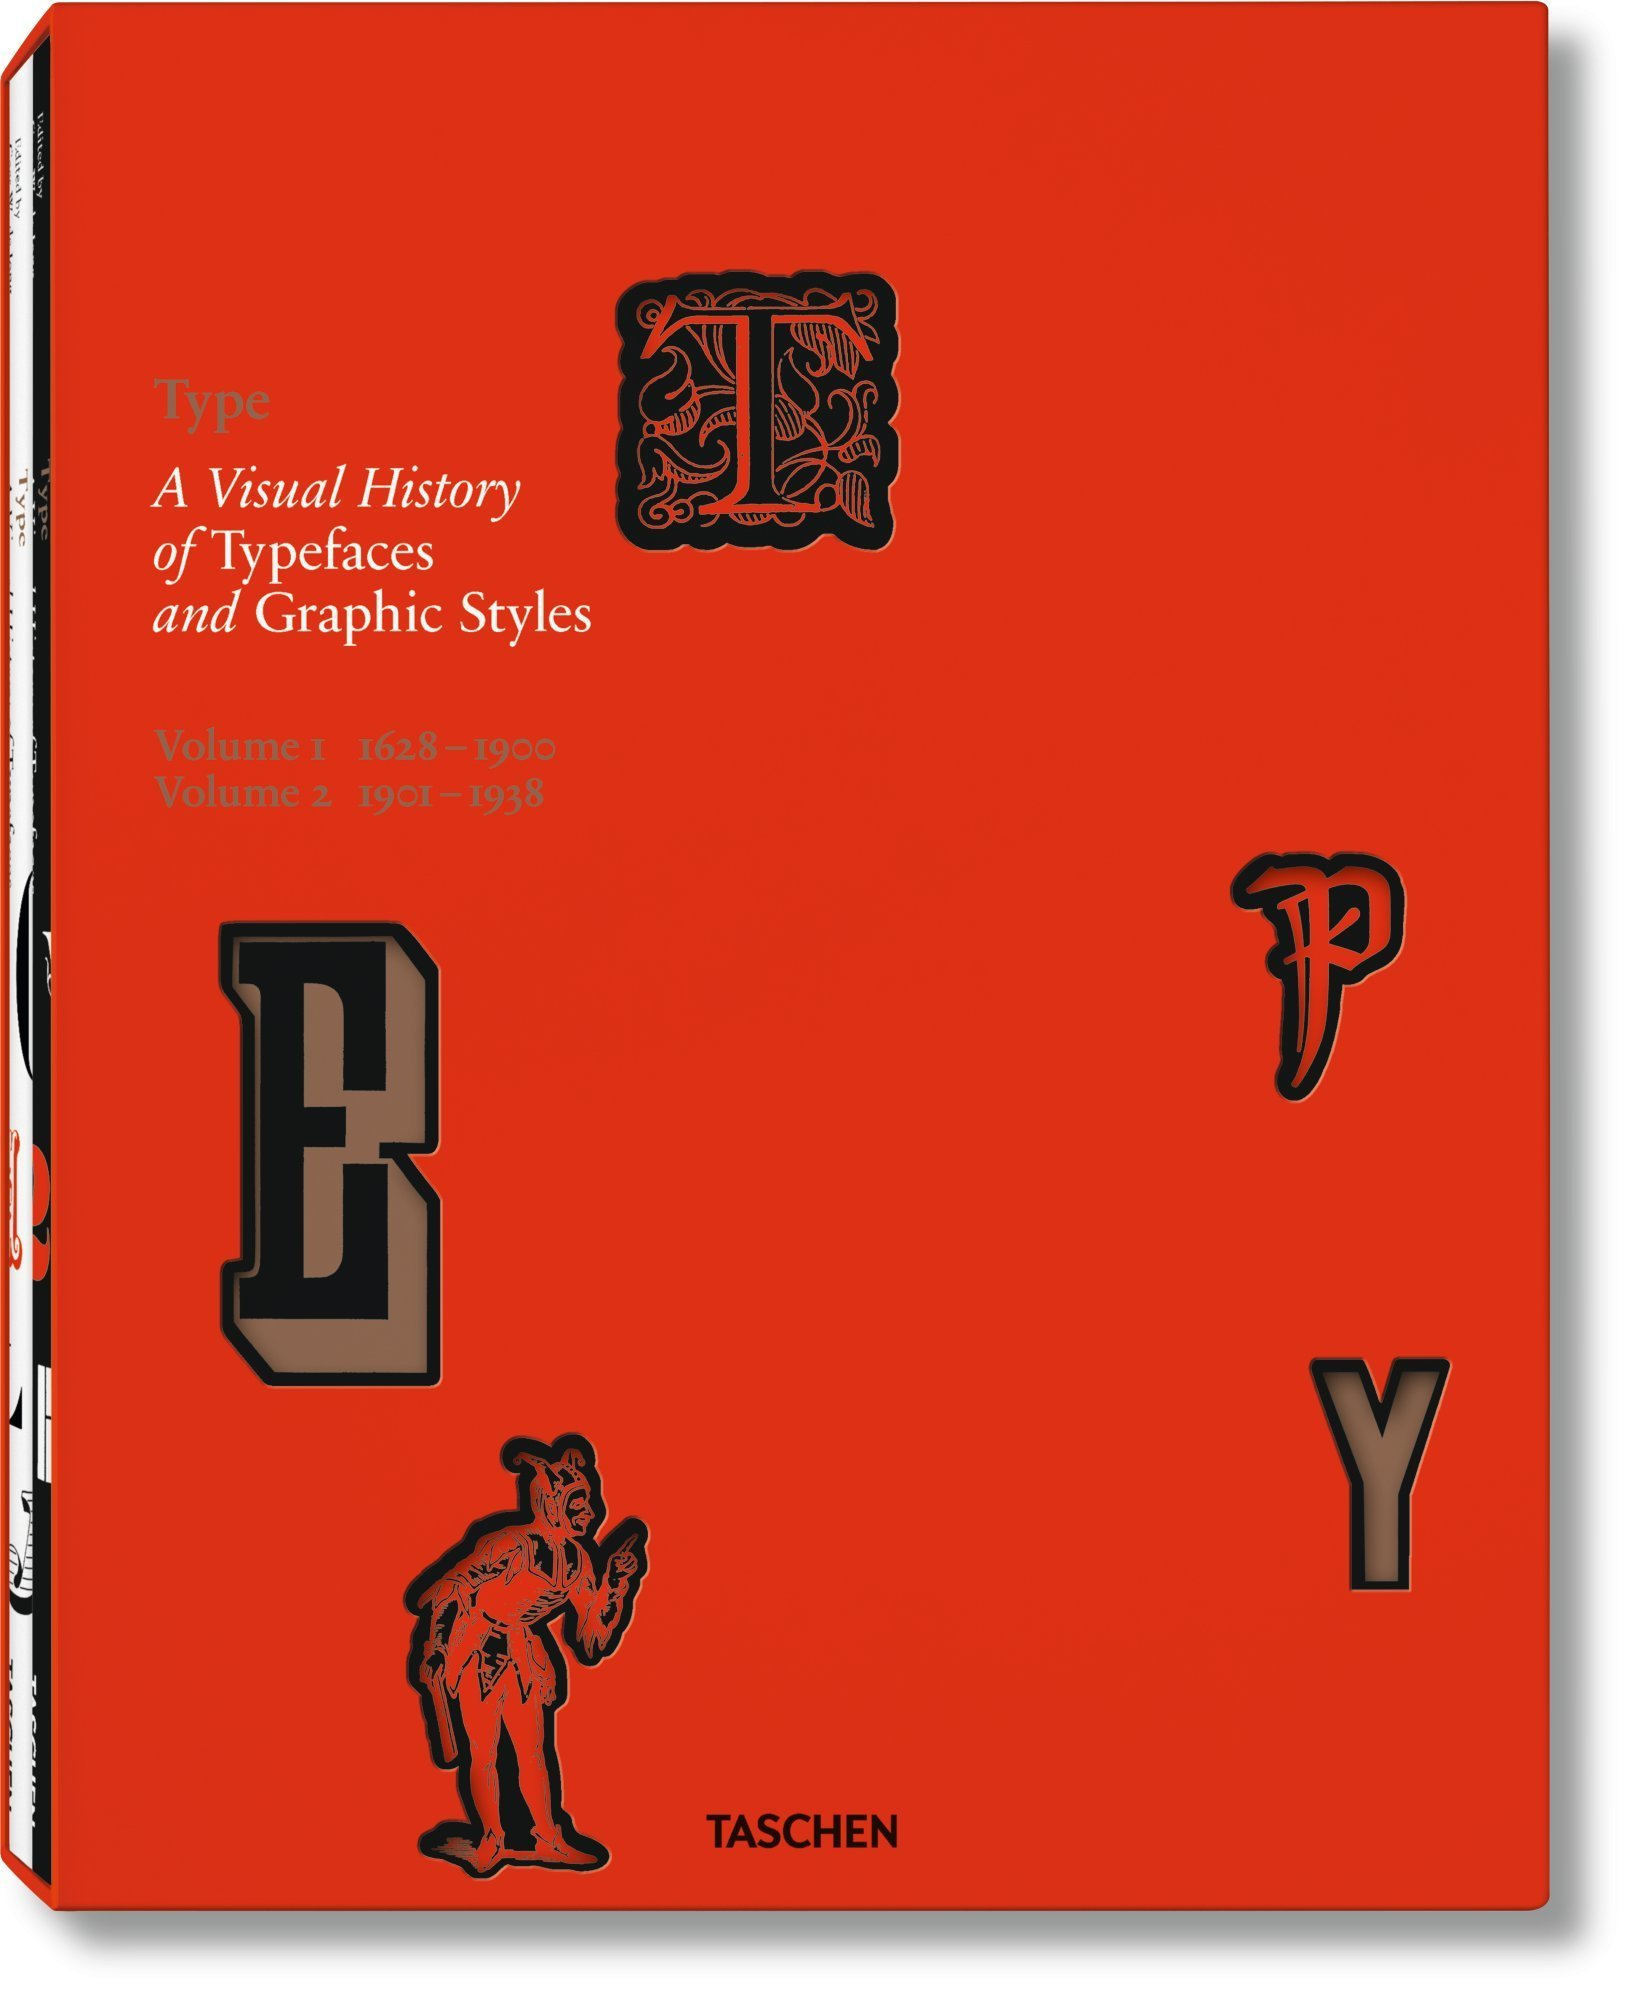 Type: A Visual History of Typefaces & Graphic Styles PDF